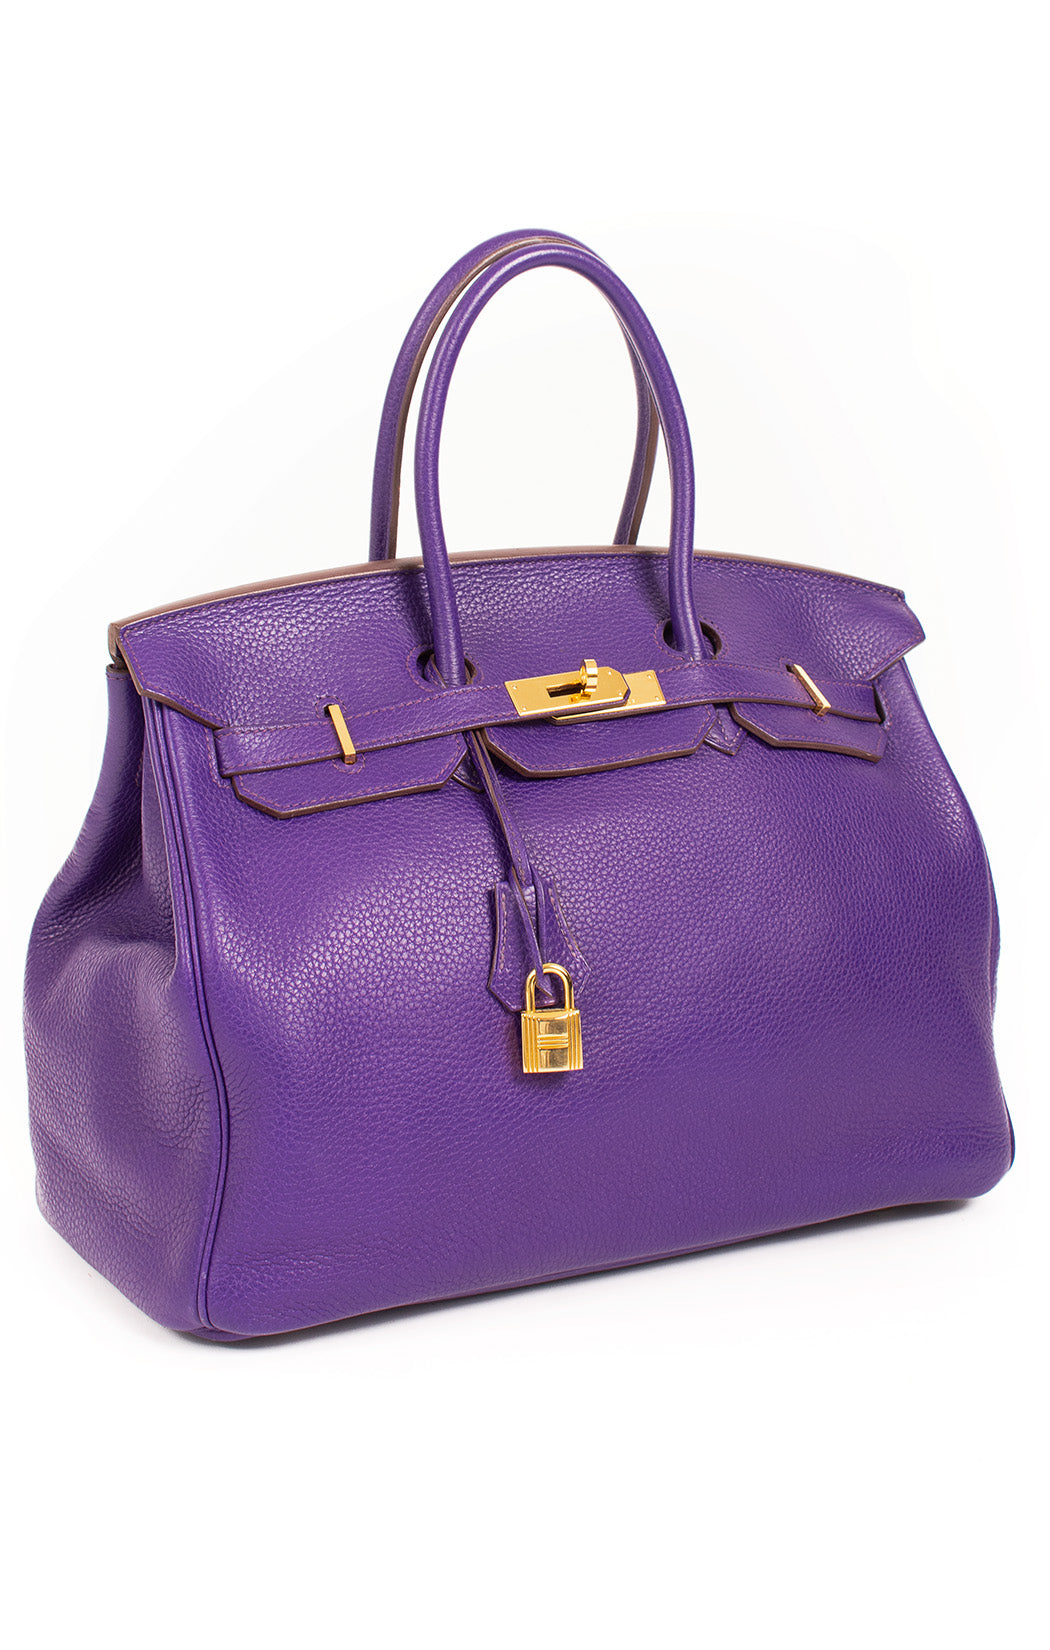 "Front view of HERMES Birkin 30 Handbag Size: H-11.75"", W-13.25"", D-7"", handle drop 4"""